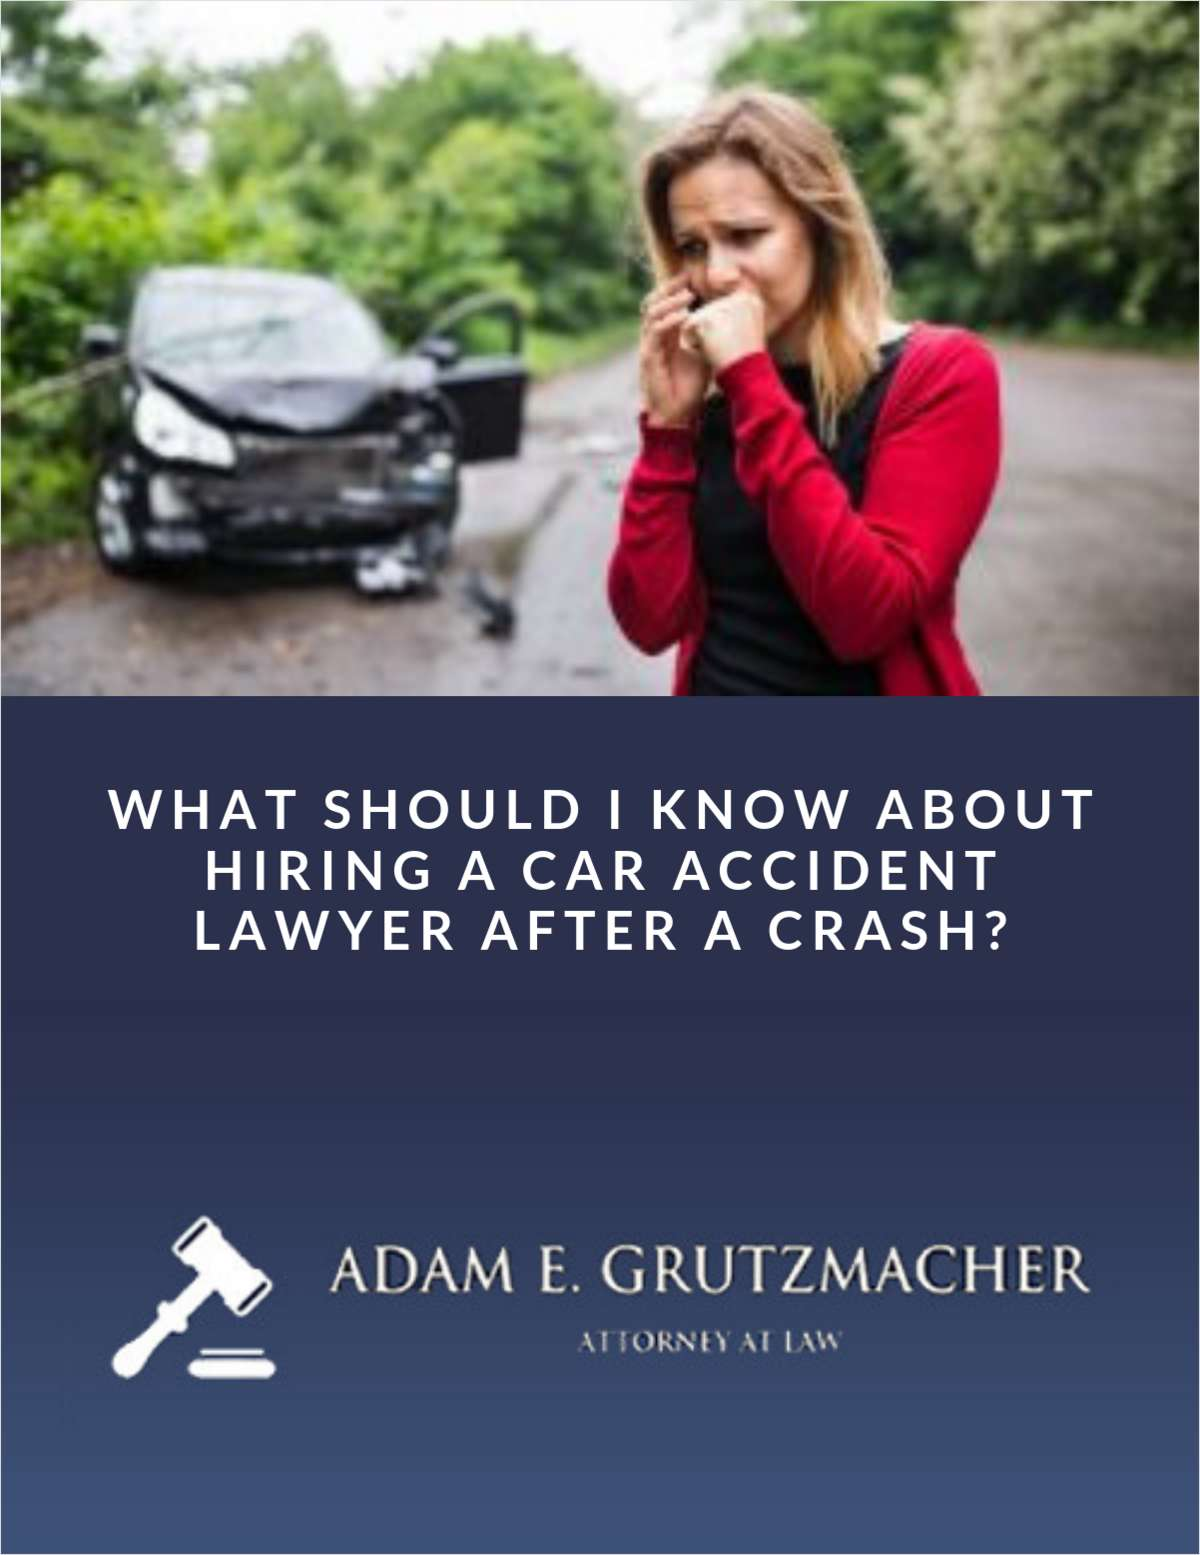 What Should I Know About Hiring a Car Accident Lawyer After a Crash?